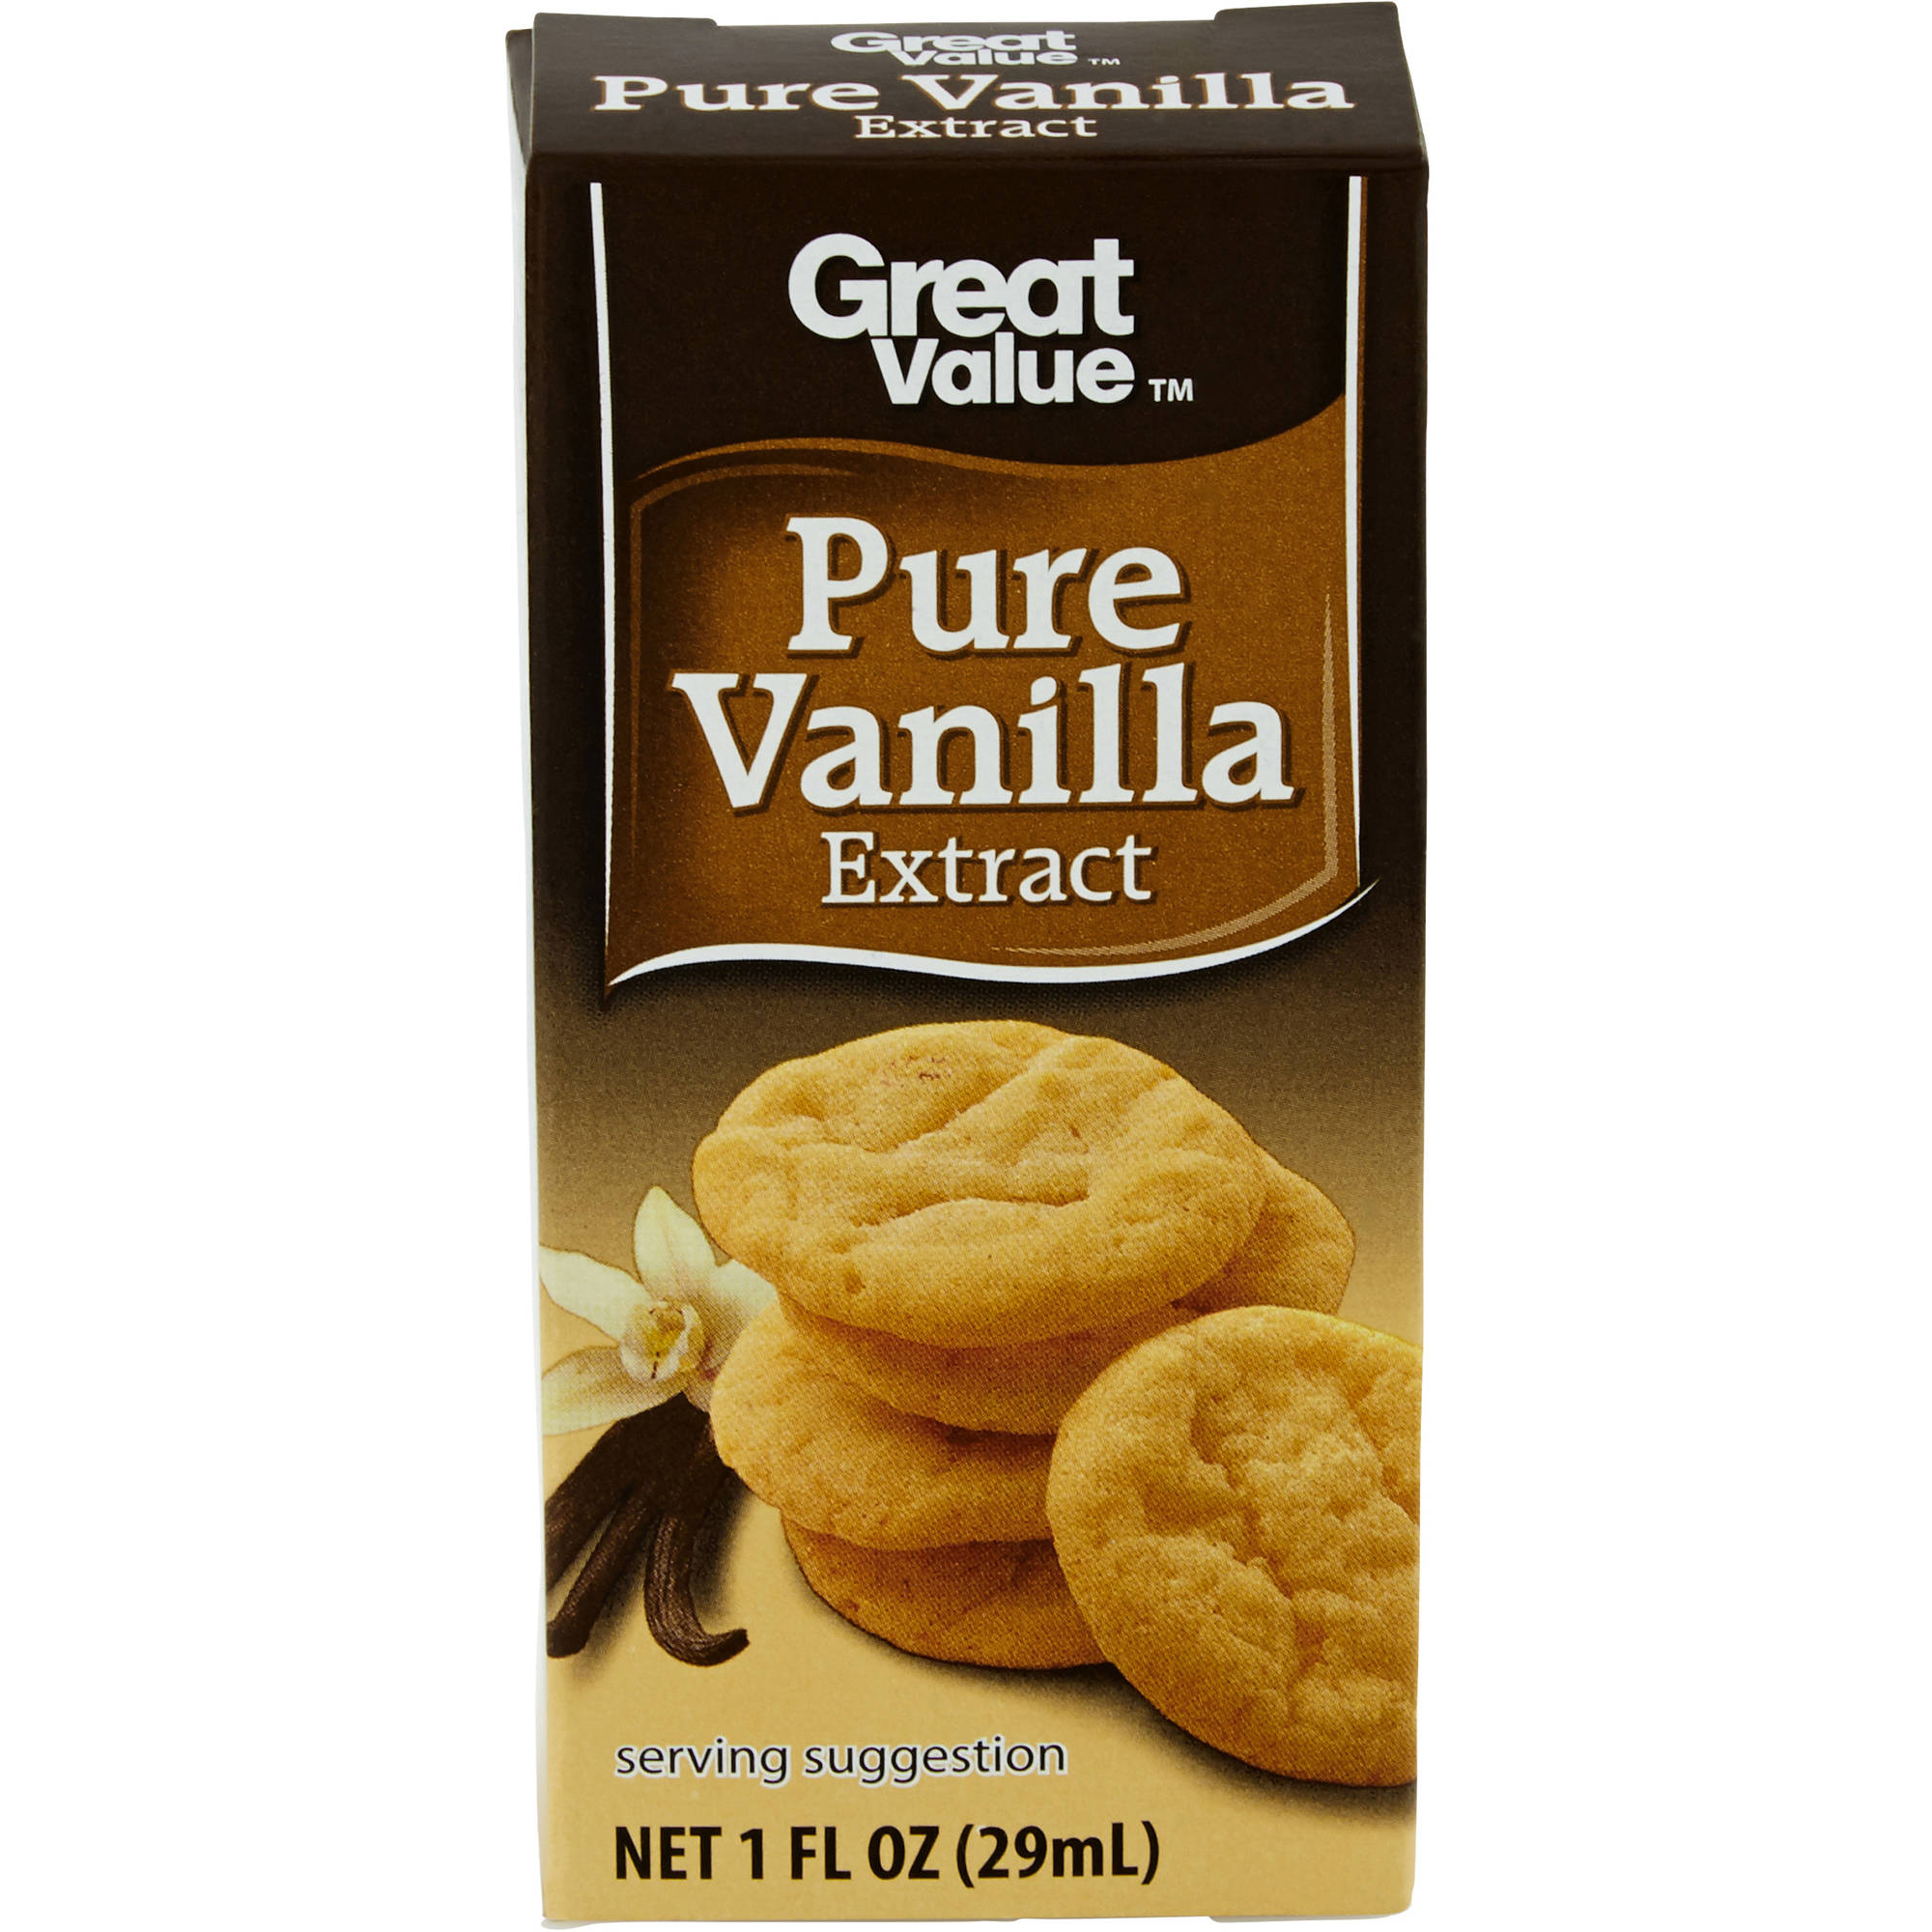 Great Value Pure Vanilla Extract, 1 fl oz